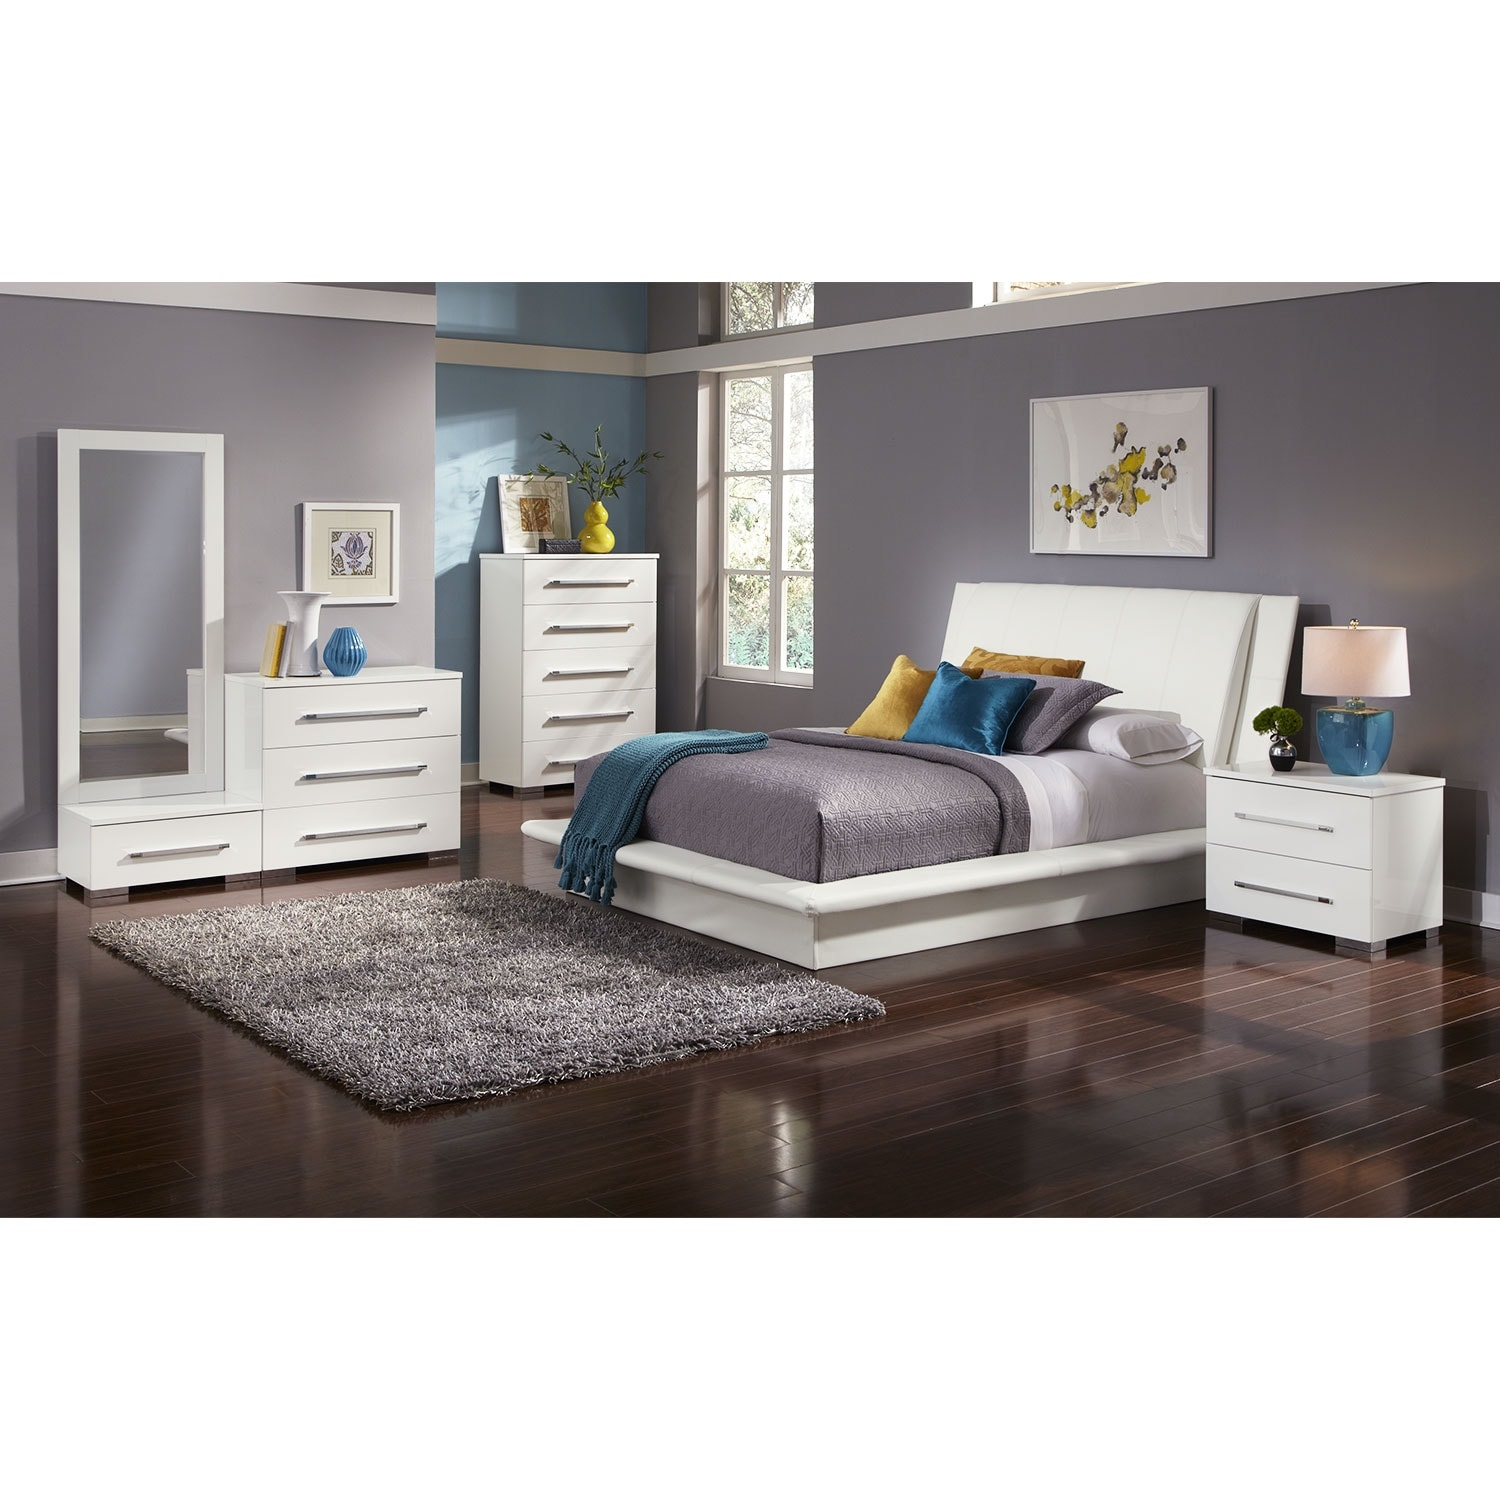 Bedroom Furniture - Dimora 7-Piece King Upholstered Bedroom Set - White